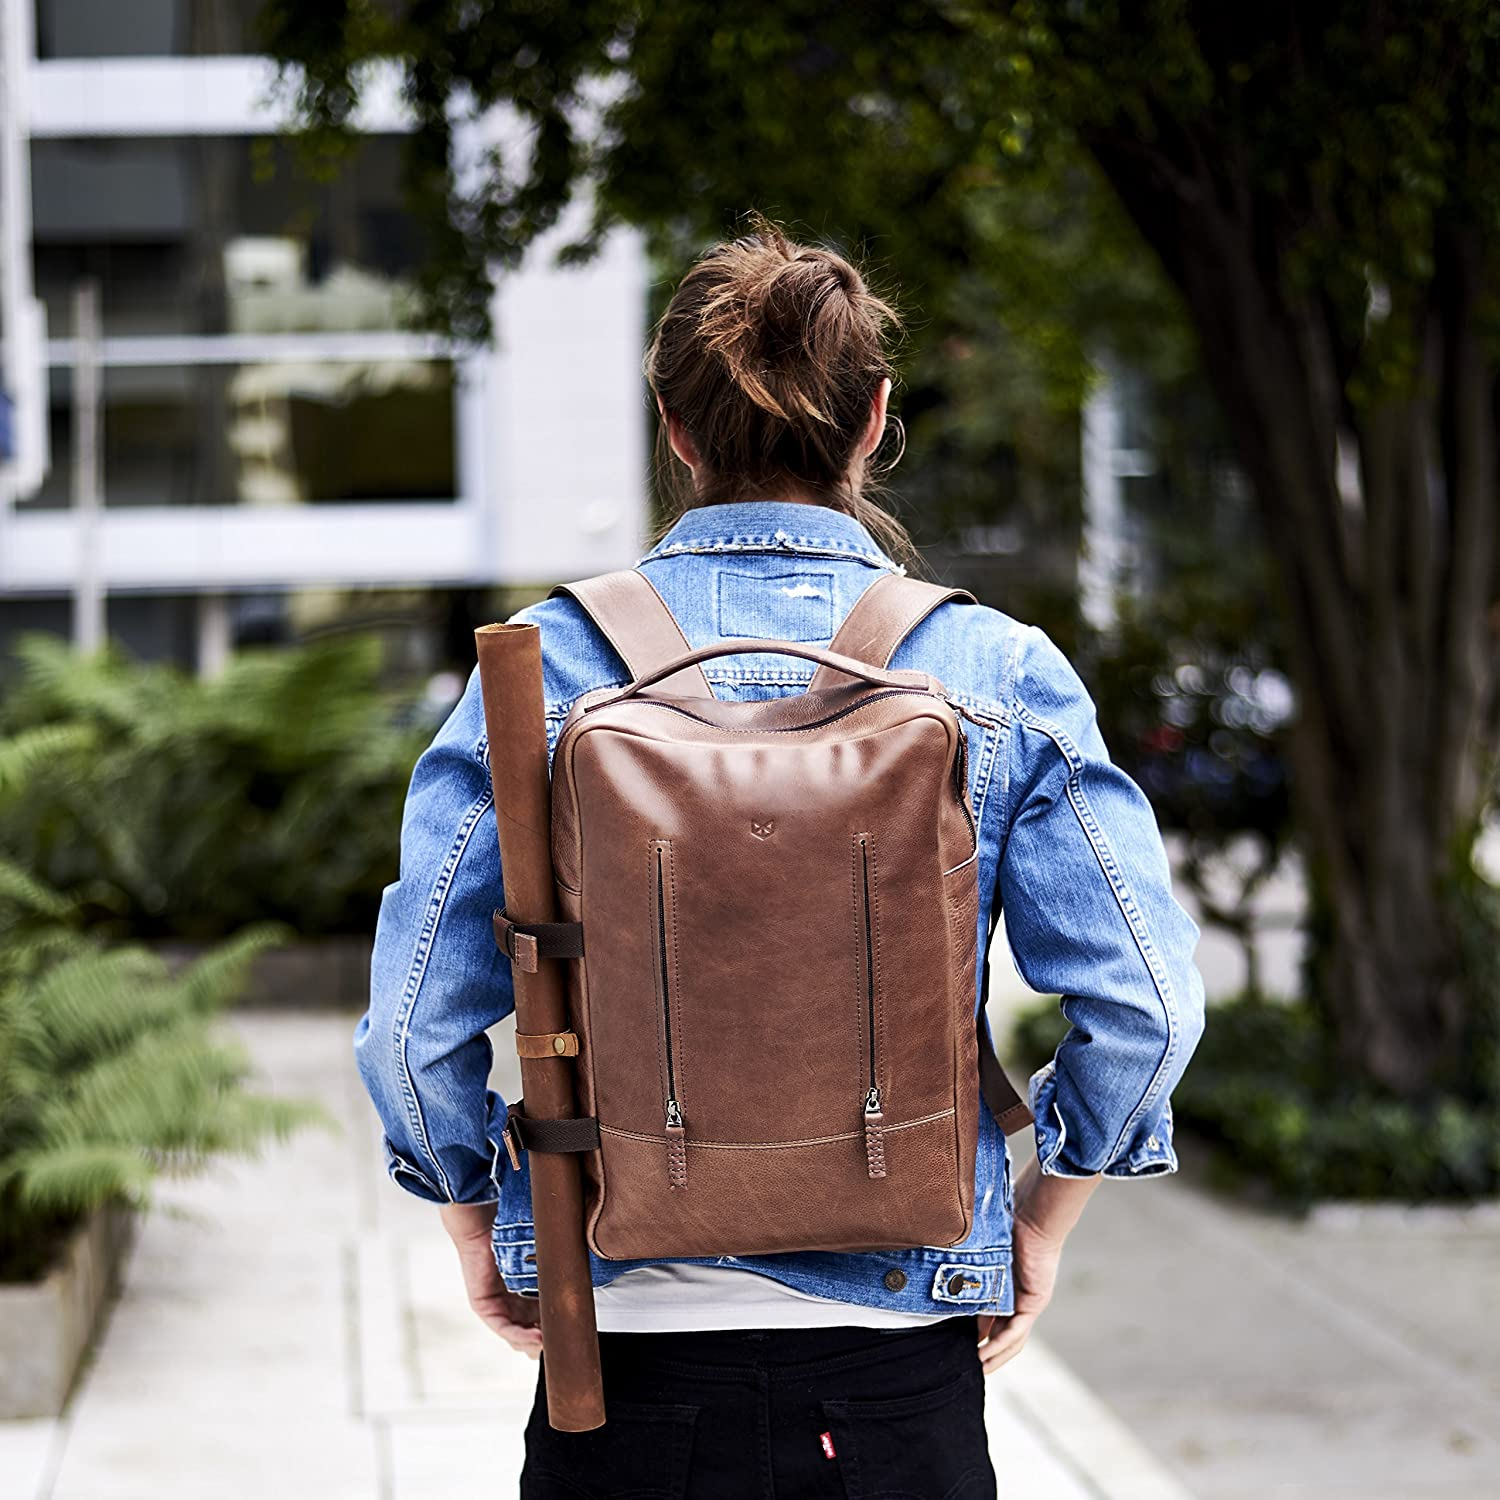 Handcrafted Backpacks